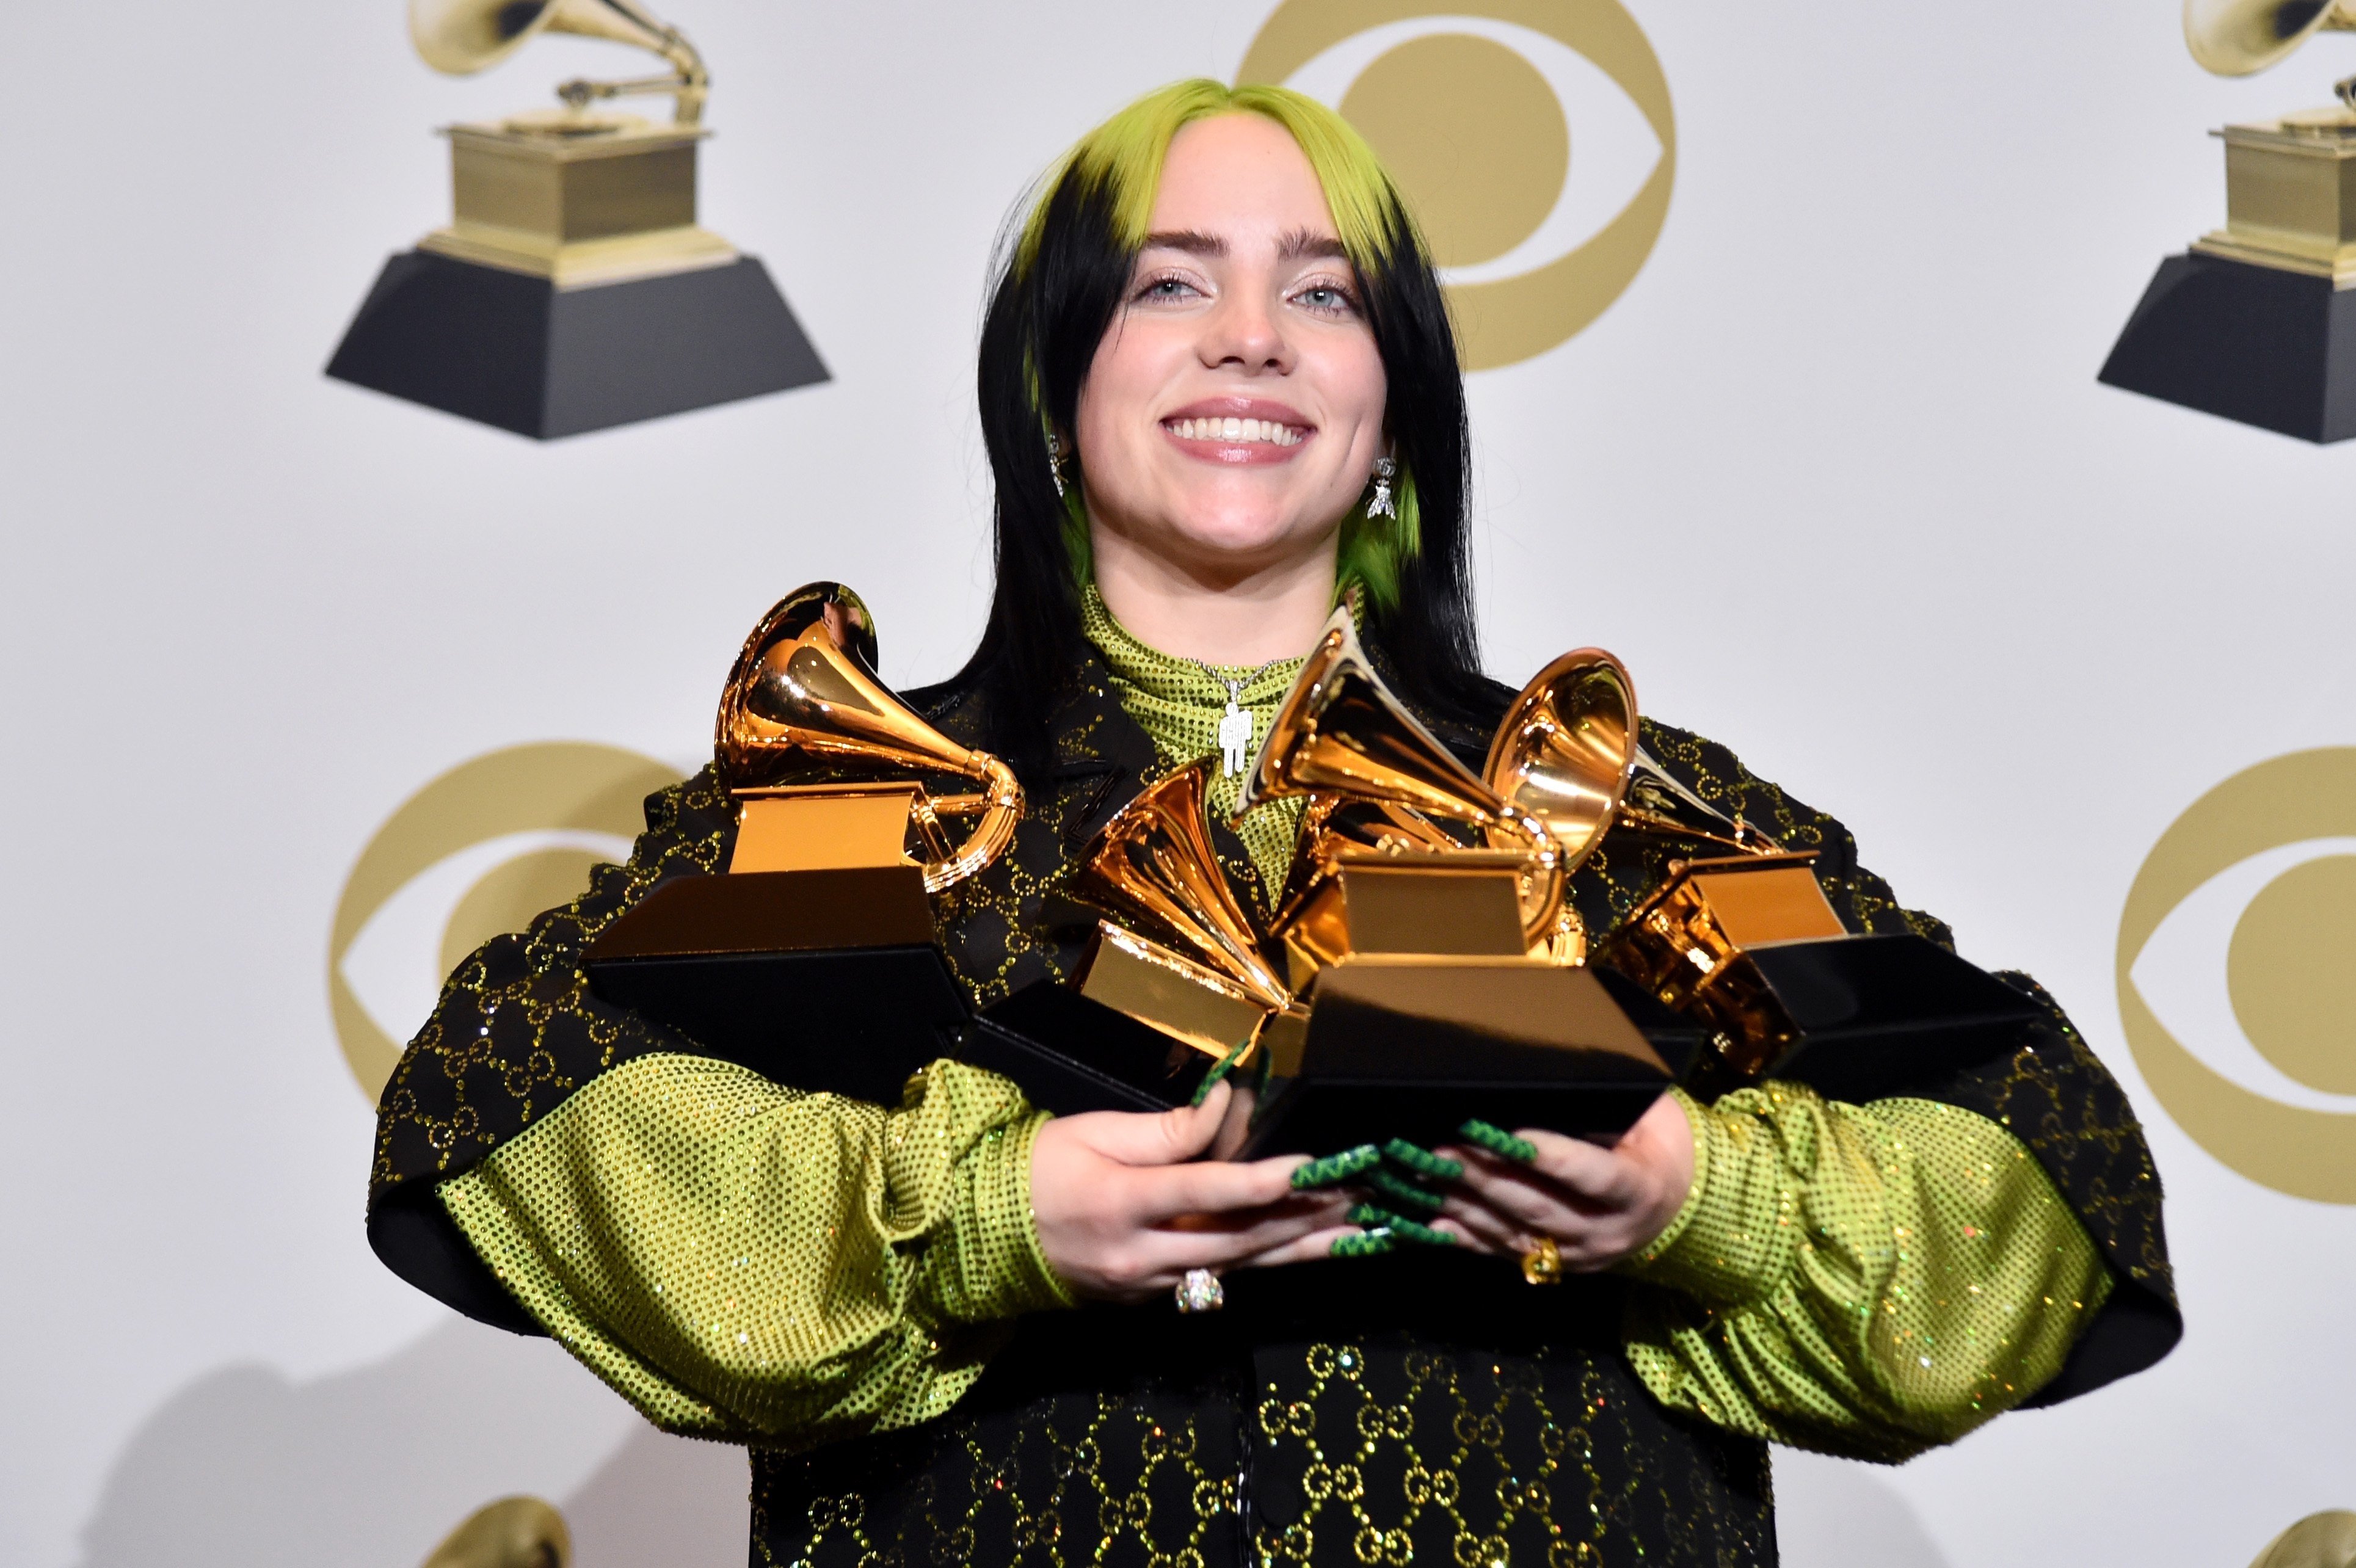 Billie Eilish during the 62nd Annual GRAMMY Awards at STAPLES Center on January 26, 2020 | Photo: GettyImages